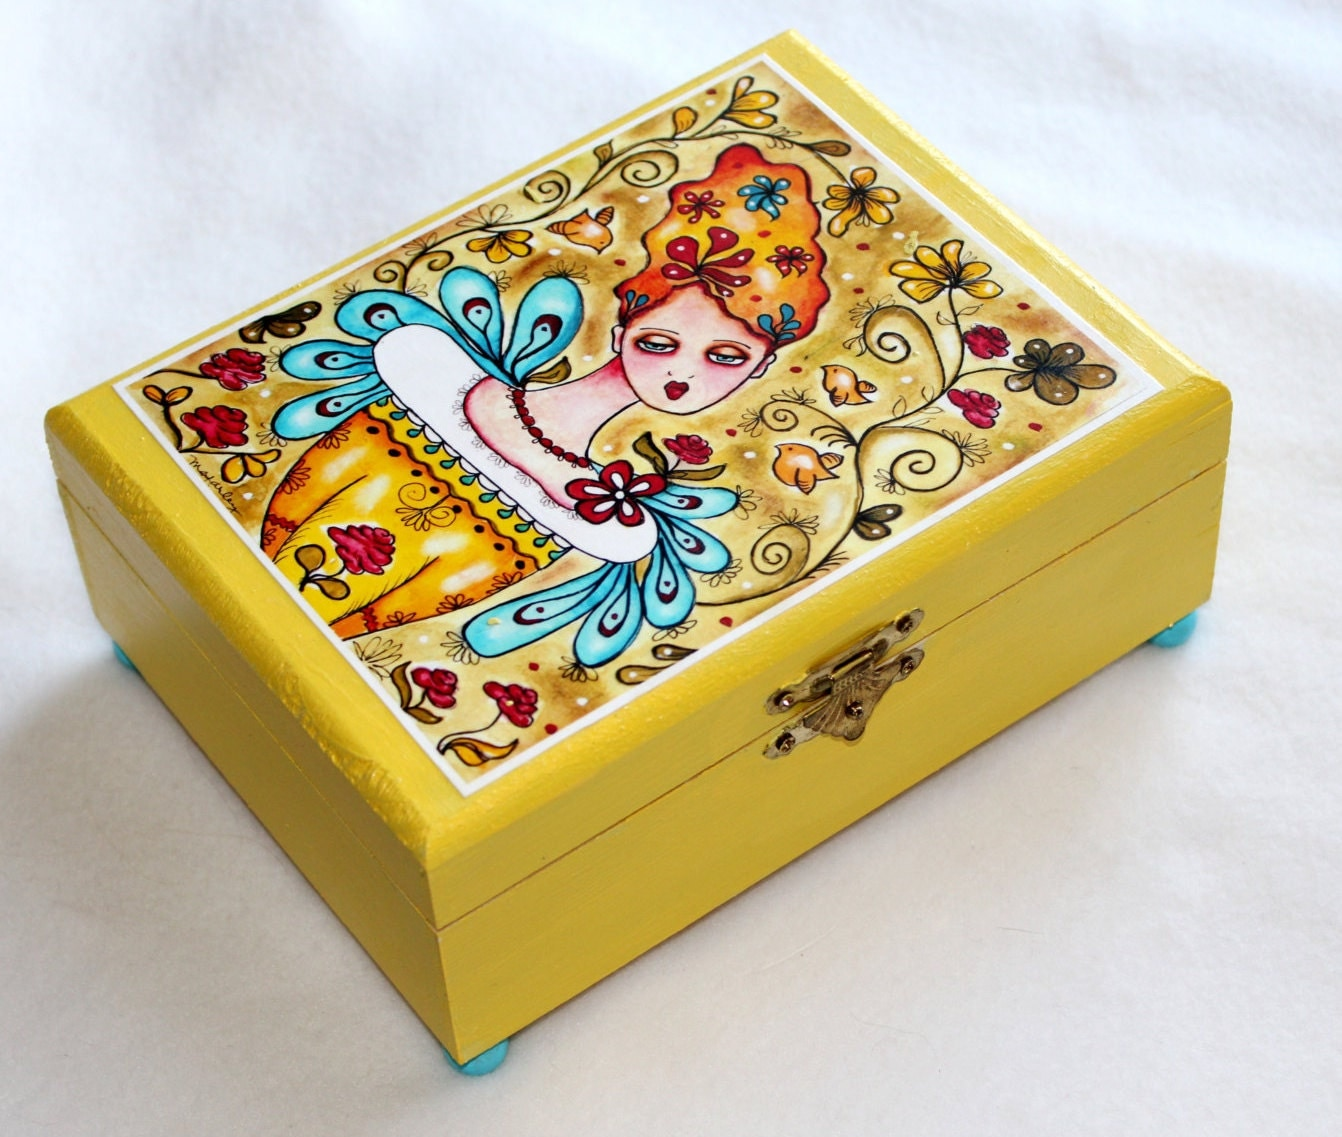 Wood jewelry box large whimsical garden girl print for Girls large jewelry box